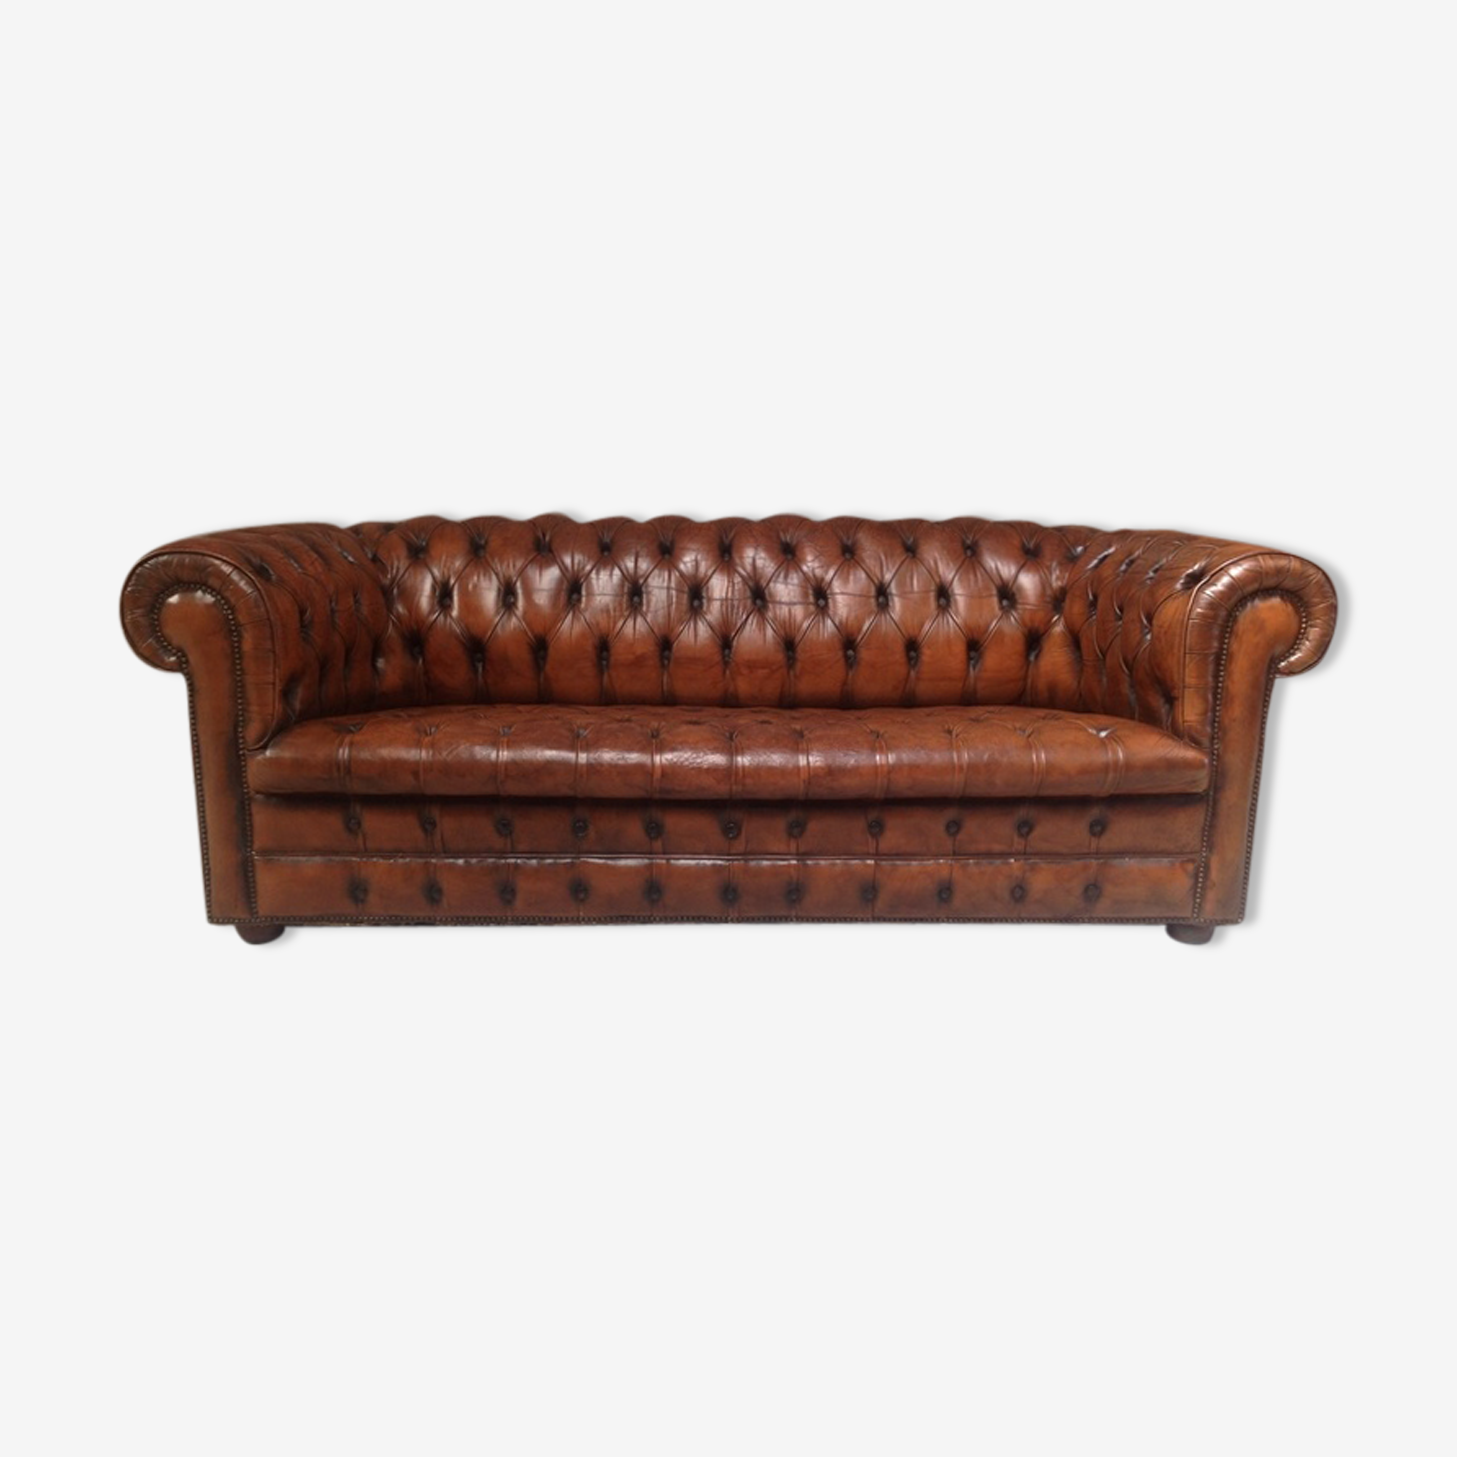 Upholstered chesterfield brown sofa